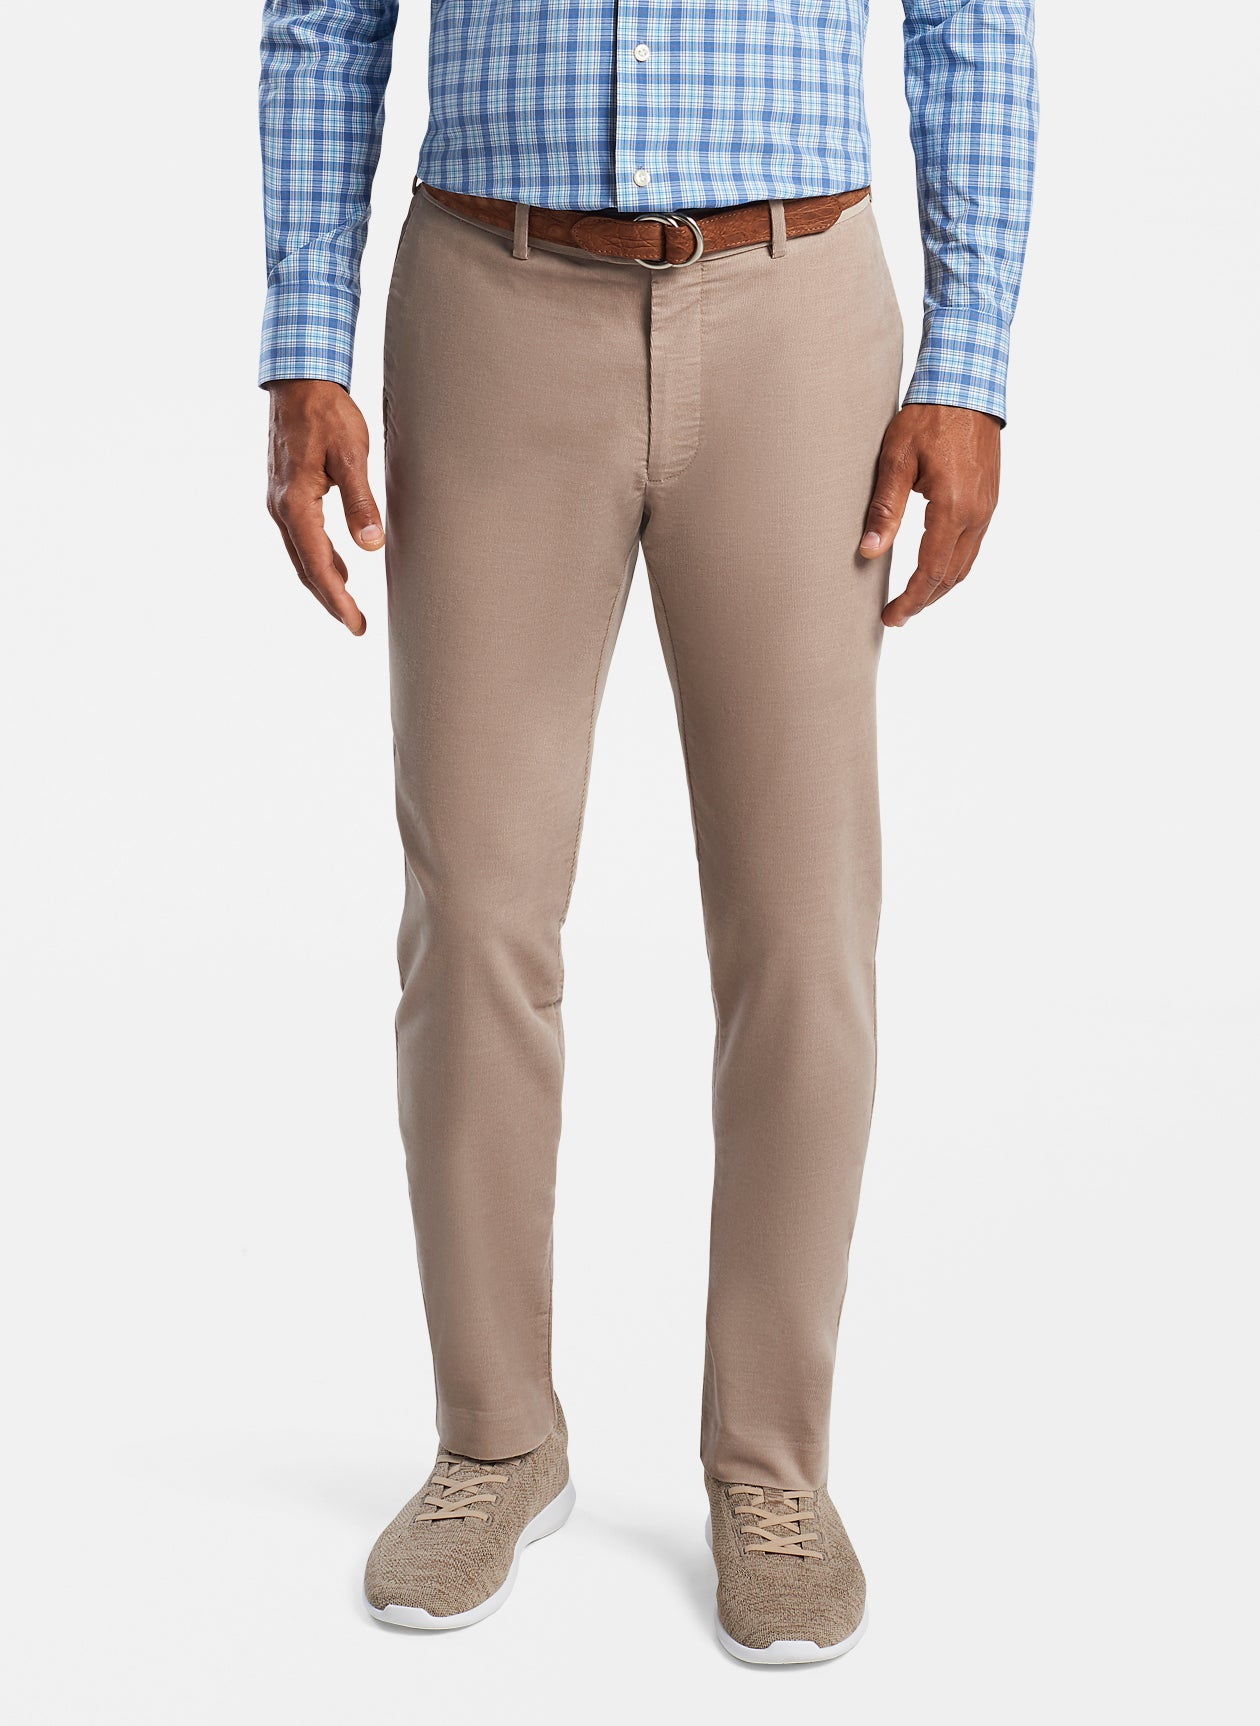 Crisman Performance Corduroy Trouser in Khaki